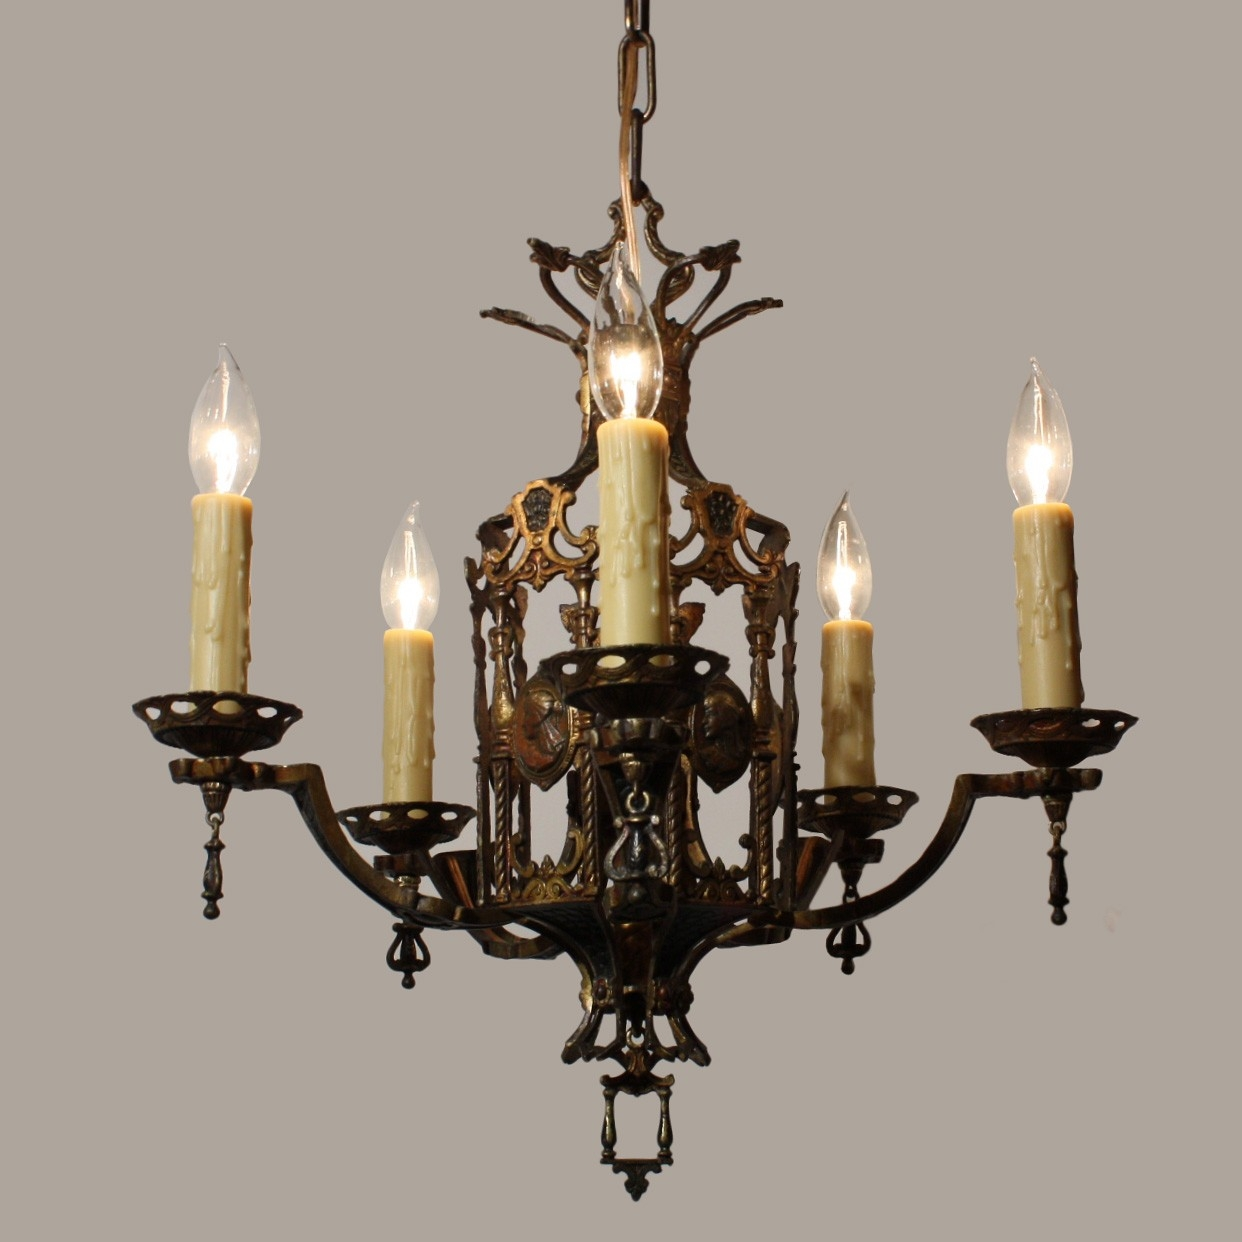 Stunning Antique Egyptian Revival Figural Chandelier With Cameos Inside Egyptian Chandelier (#11 of 12)